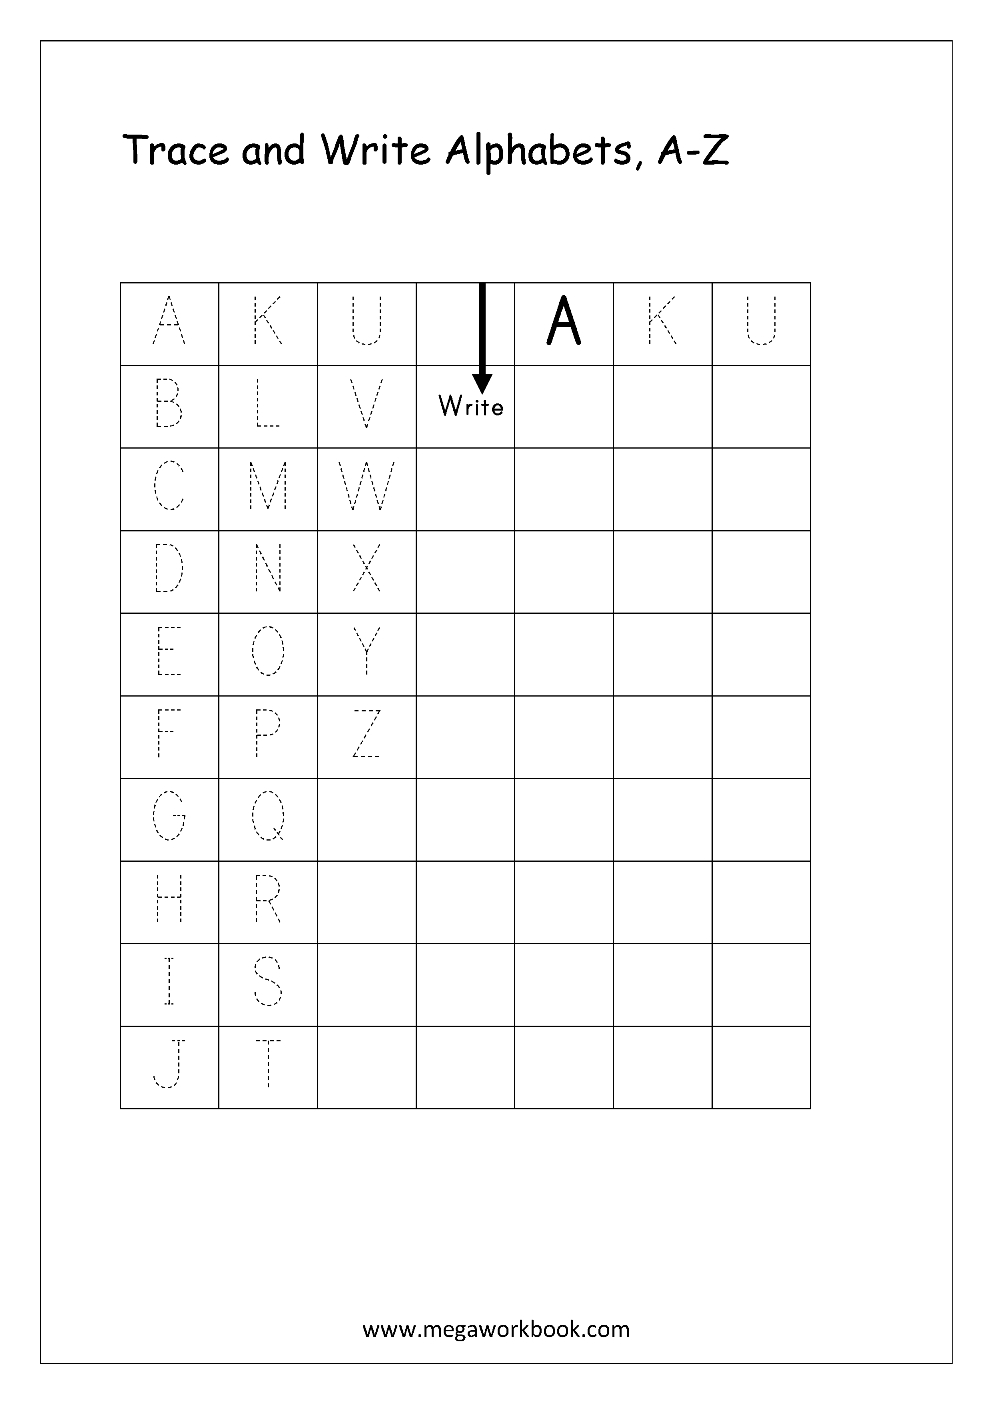 Free English Worksheets - Alphabet Writing (Capital Letters for Alphabet Tracing Notebook